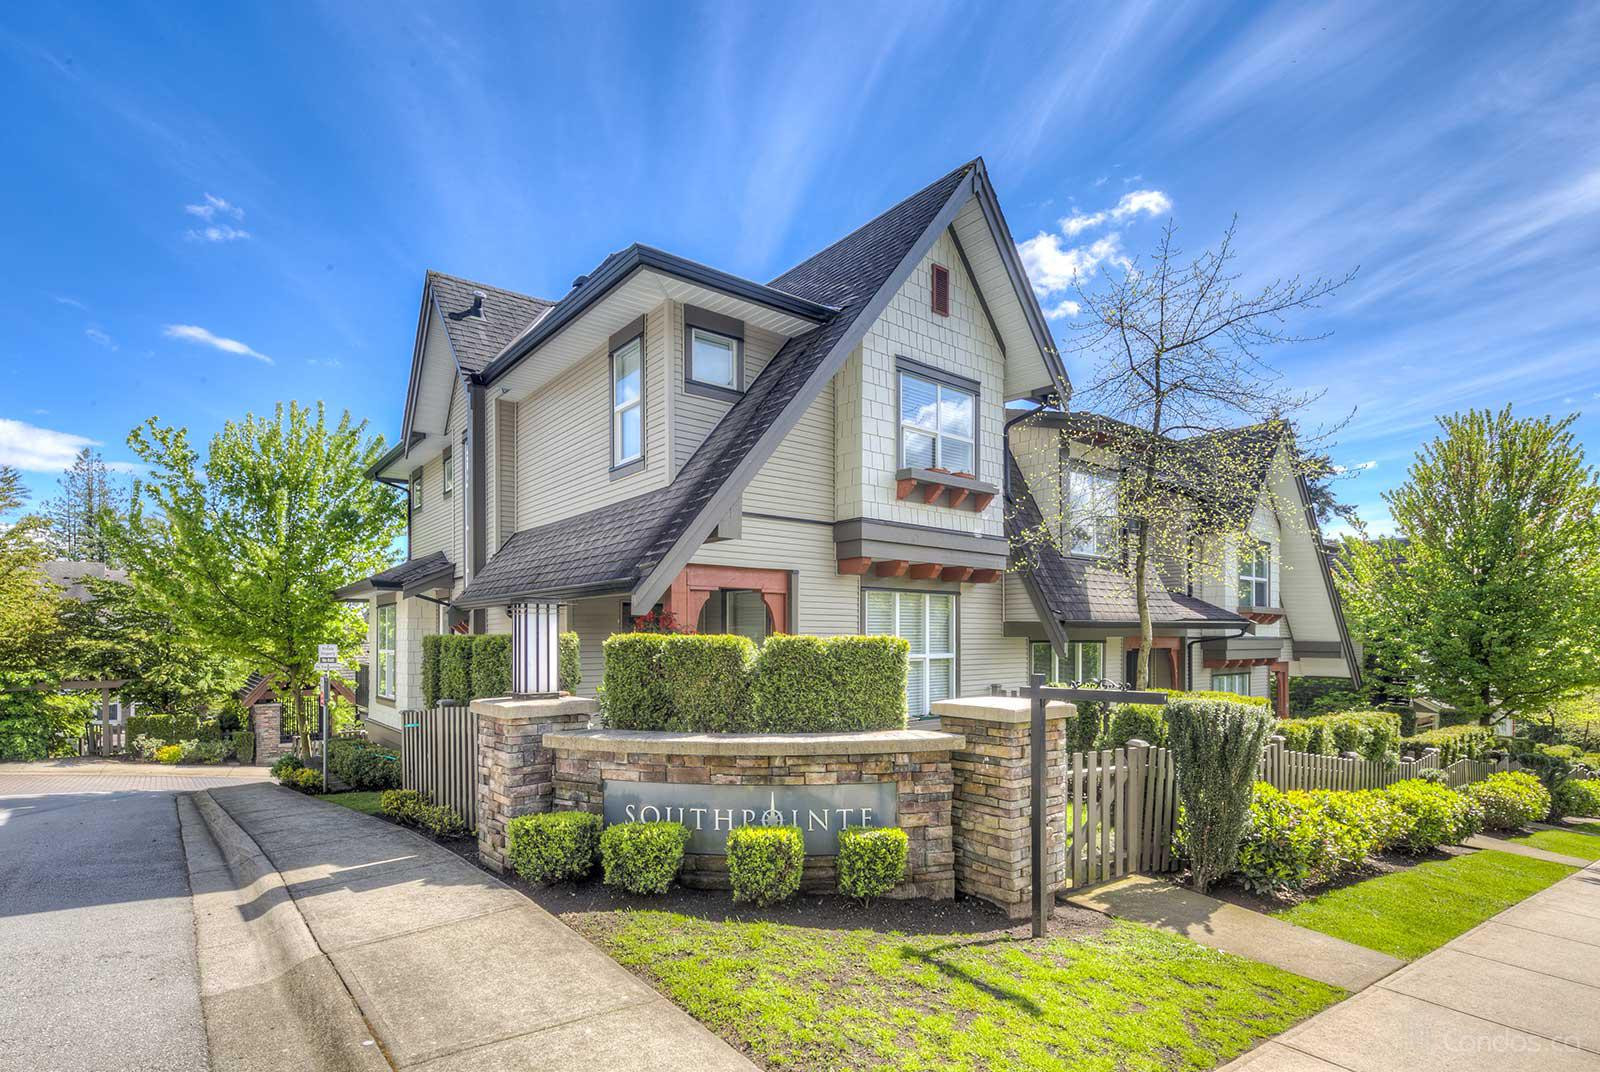 Southpointe at 6736 Southpoint Dr, Burnaby 0